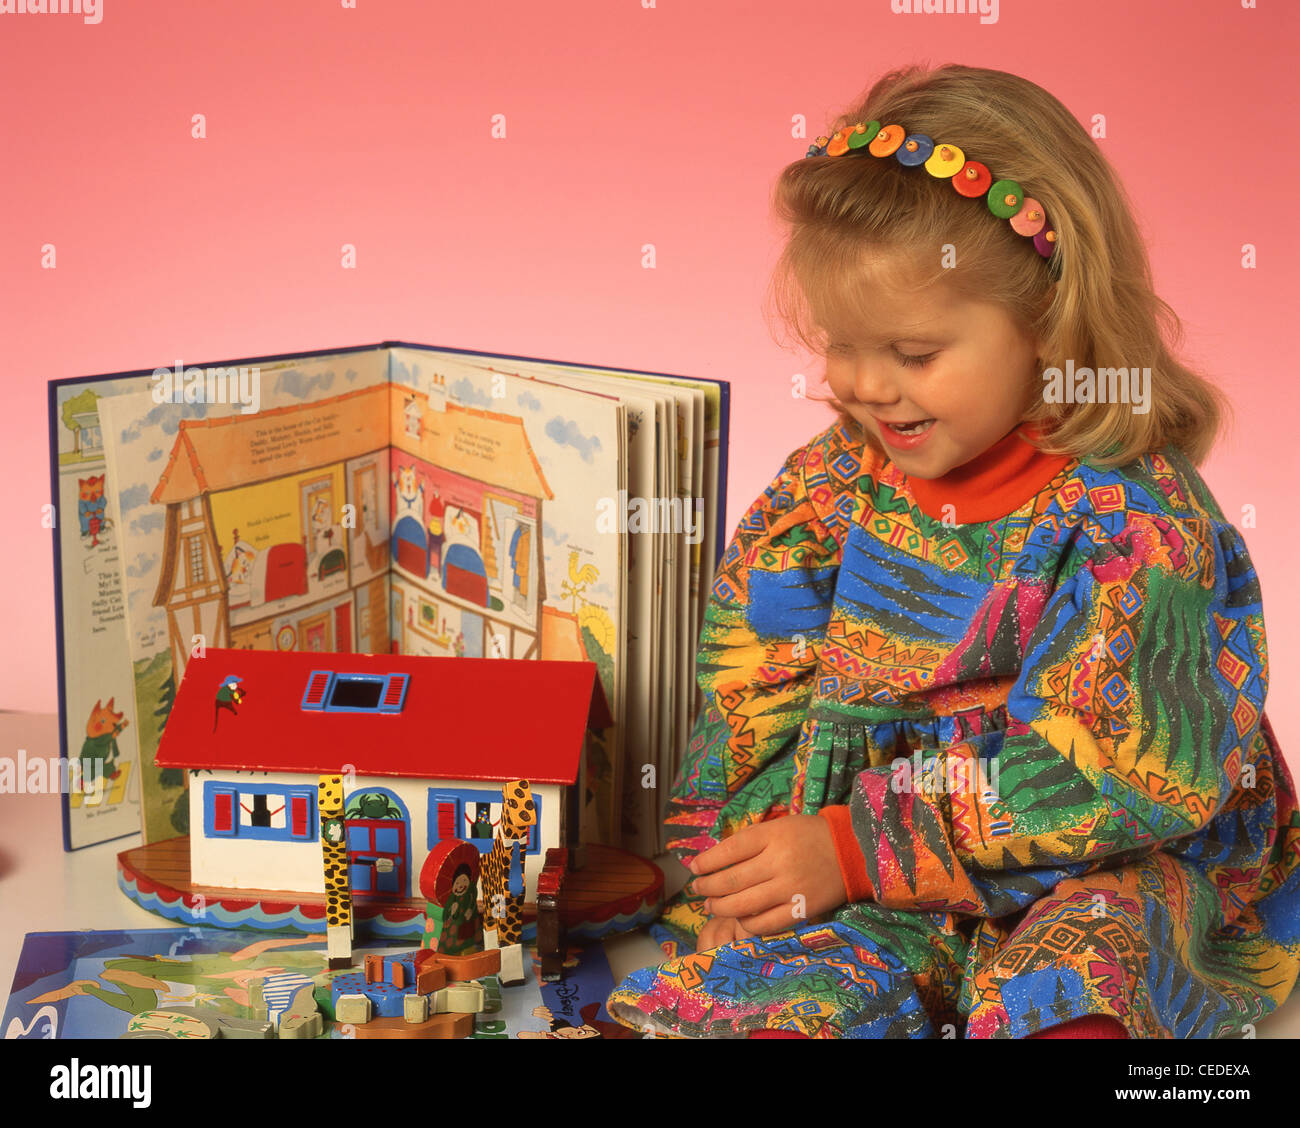 Young girl playing with toys, Berkshire, England, United Kingdom - Stock Image